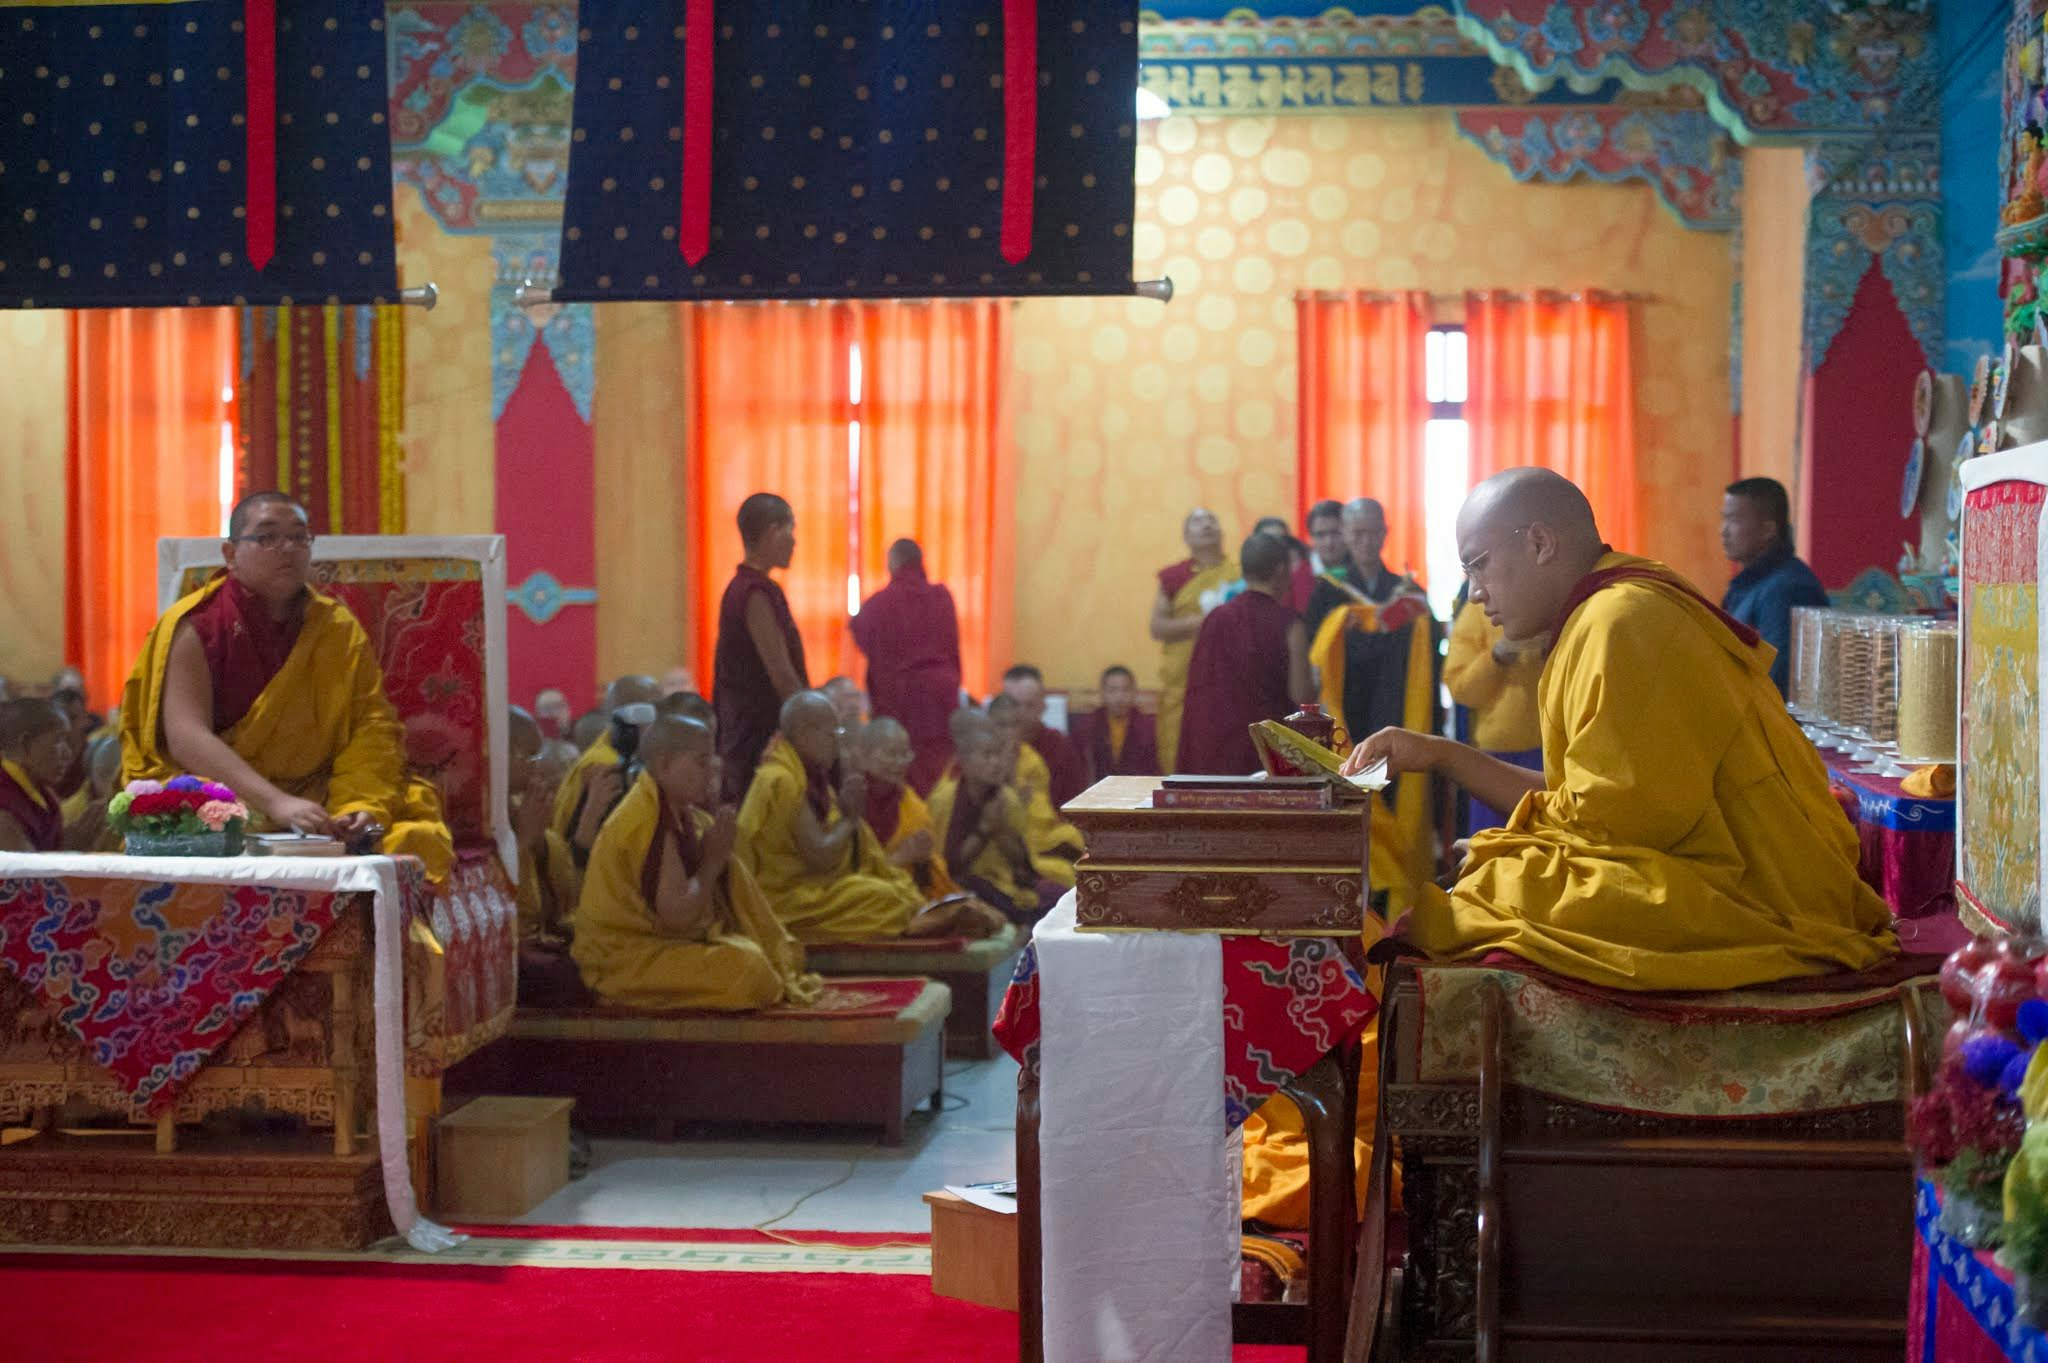 Teachings from Gampopa's Jewel Ornament of Liberation